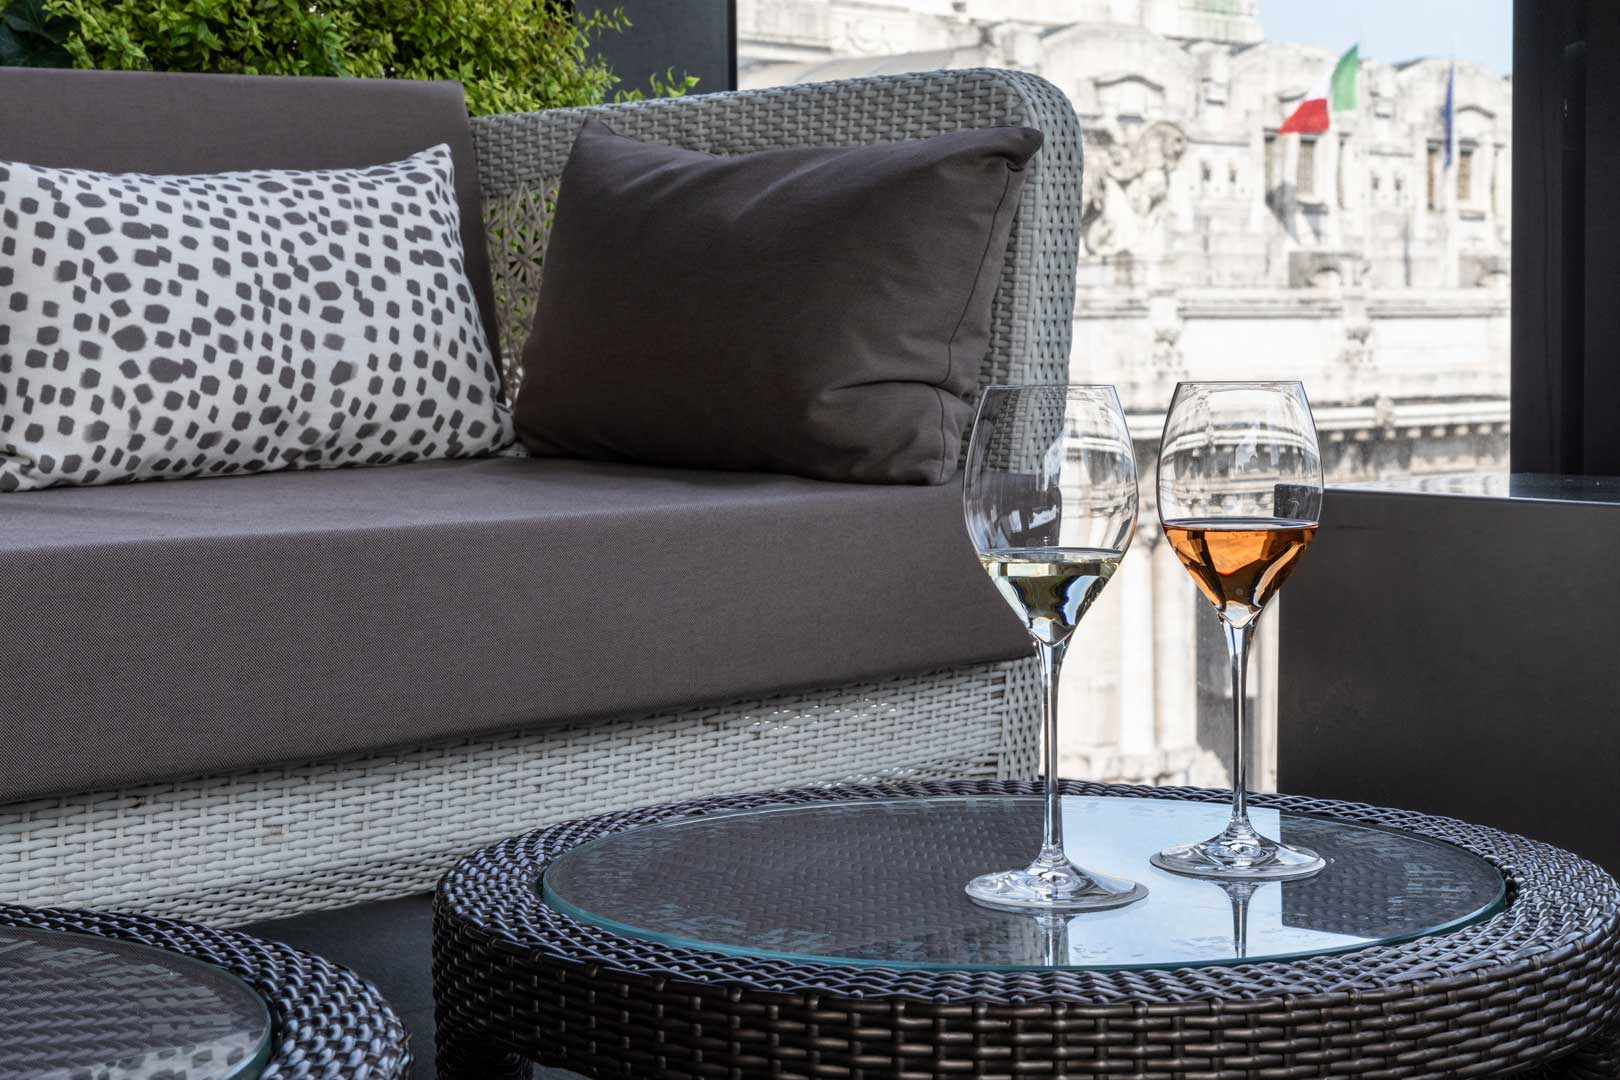 The New Terrazza Gallia Aperitivo Menu Flawless Milano